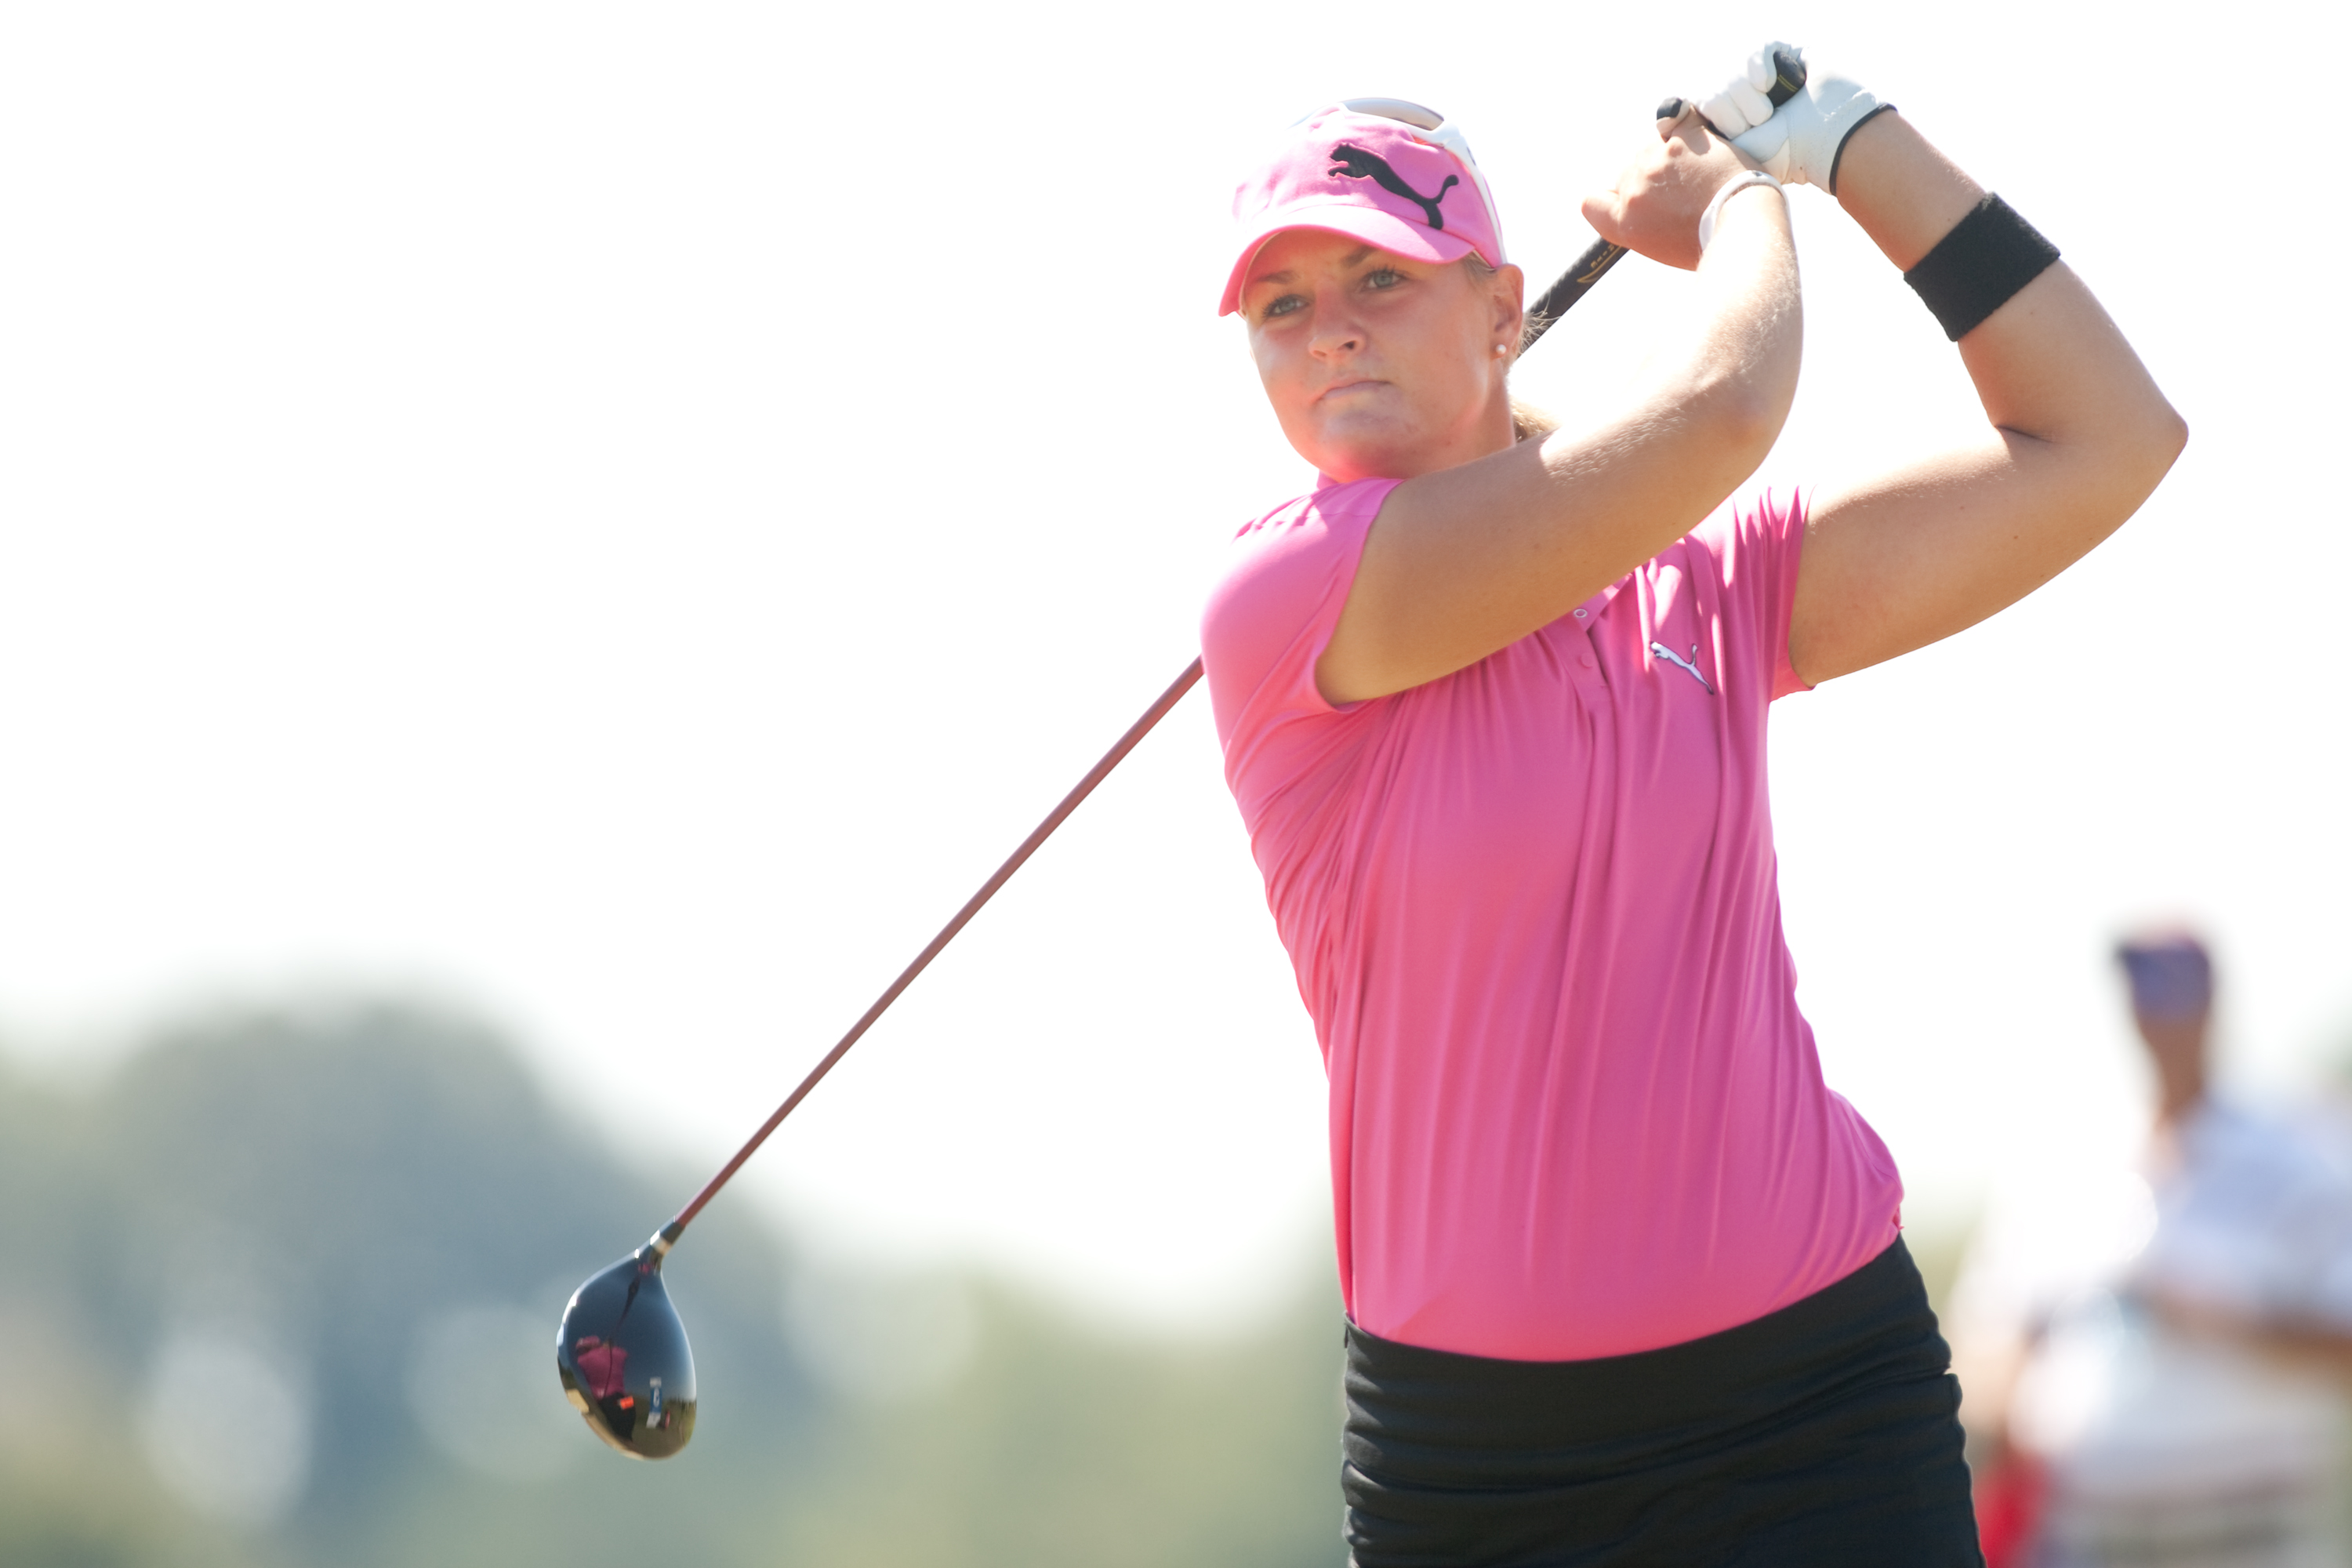 PRATTVILLE, AL - OCTOBER 9: Anna Nordqvist of Sweden follows through on a tee shot during the third round of the Navistar LPGA Classic at the Senator Course at the Robert Trent Jones Golf Trail on October 9, 2010 in Prattville, Alabama. (Photo by Darren C